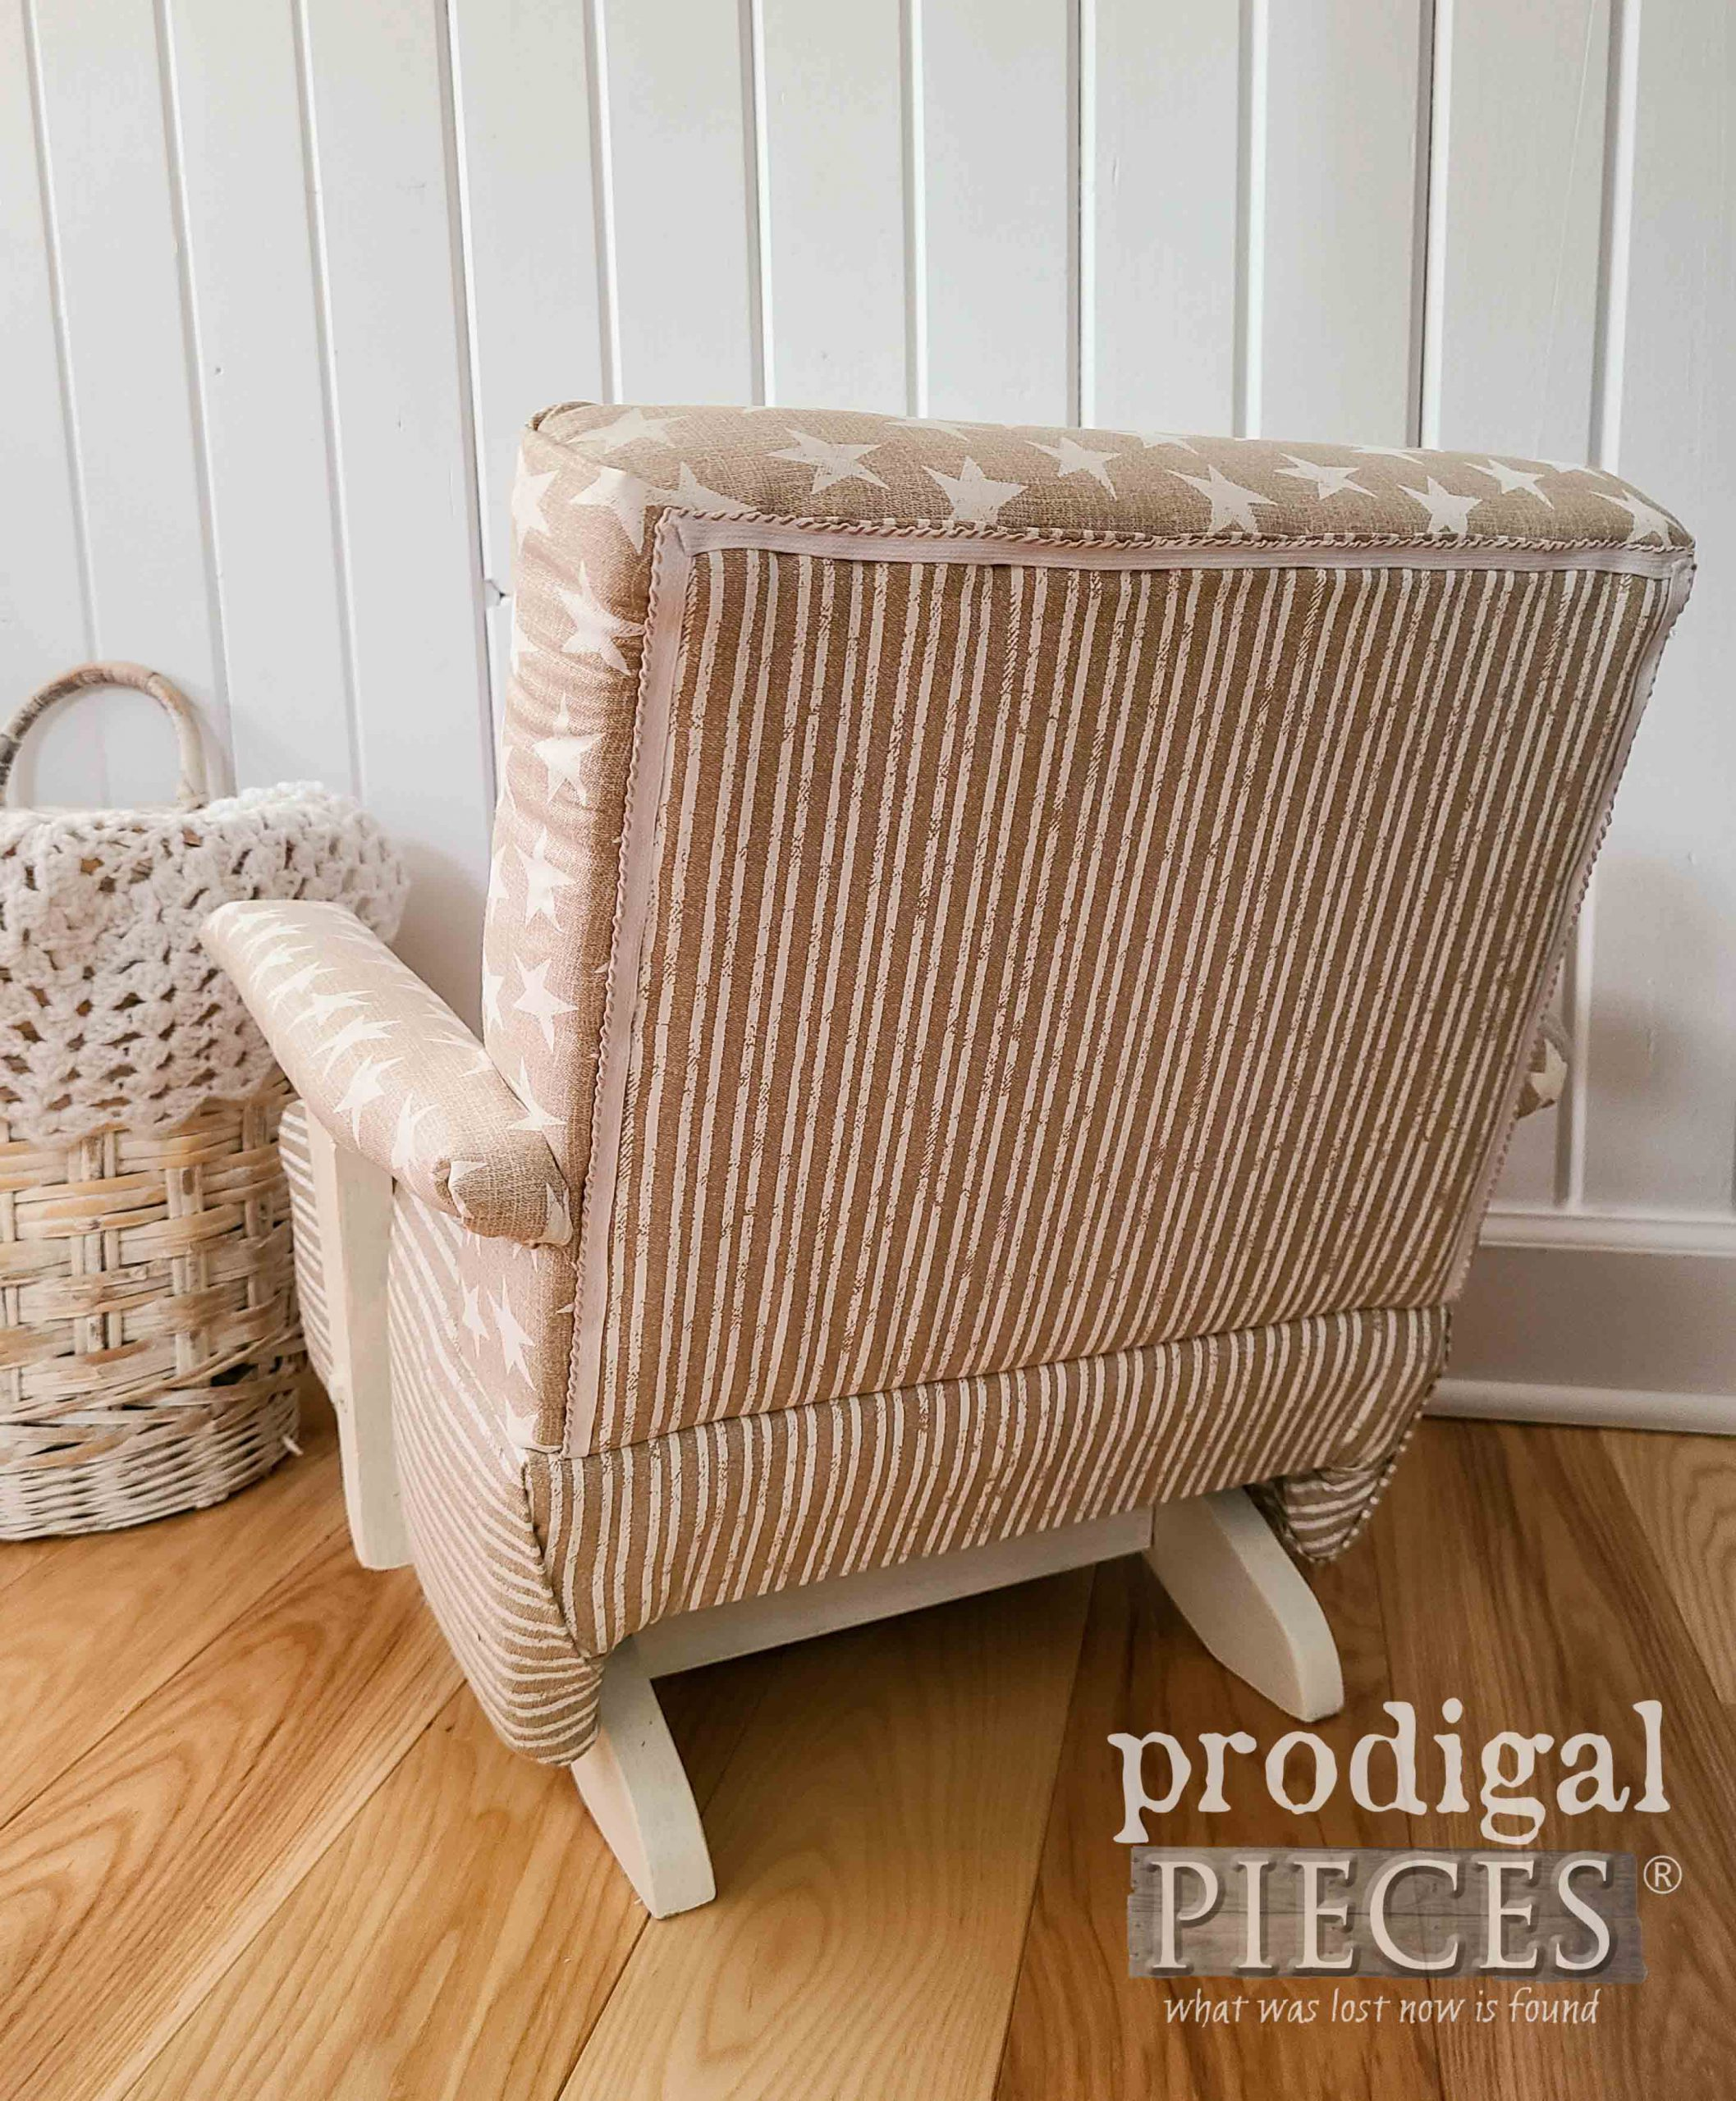 Back Design of Child's Upholstered Rocking Chair by Larissa of Prodigal Pieces | prodigalpieces.com #prodigalpieces #diy #home #homedecor #upholstery